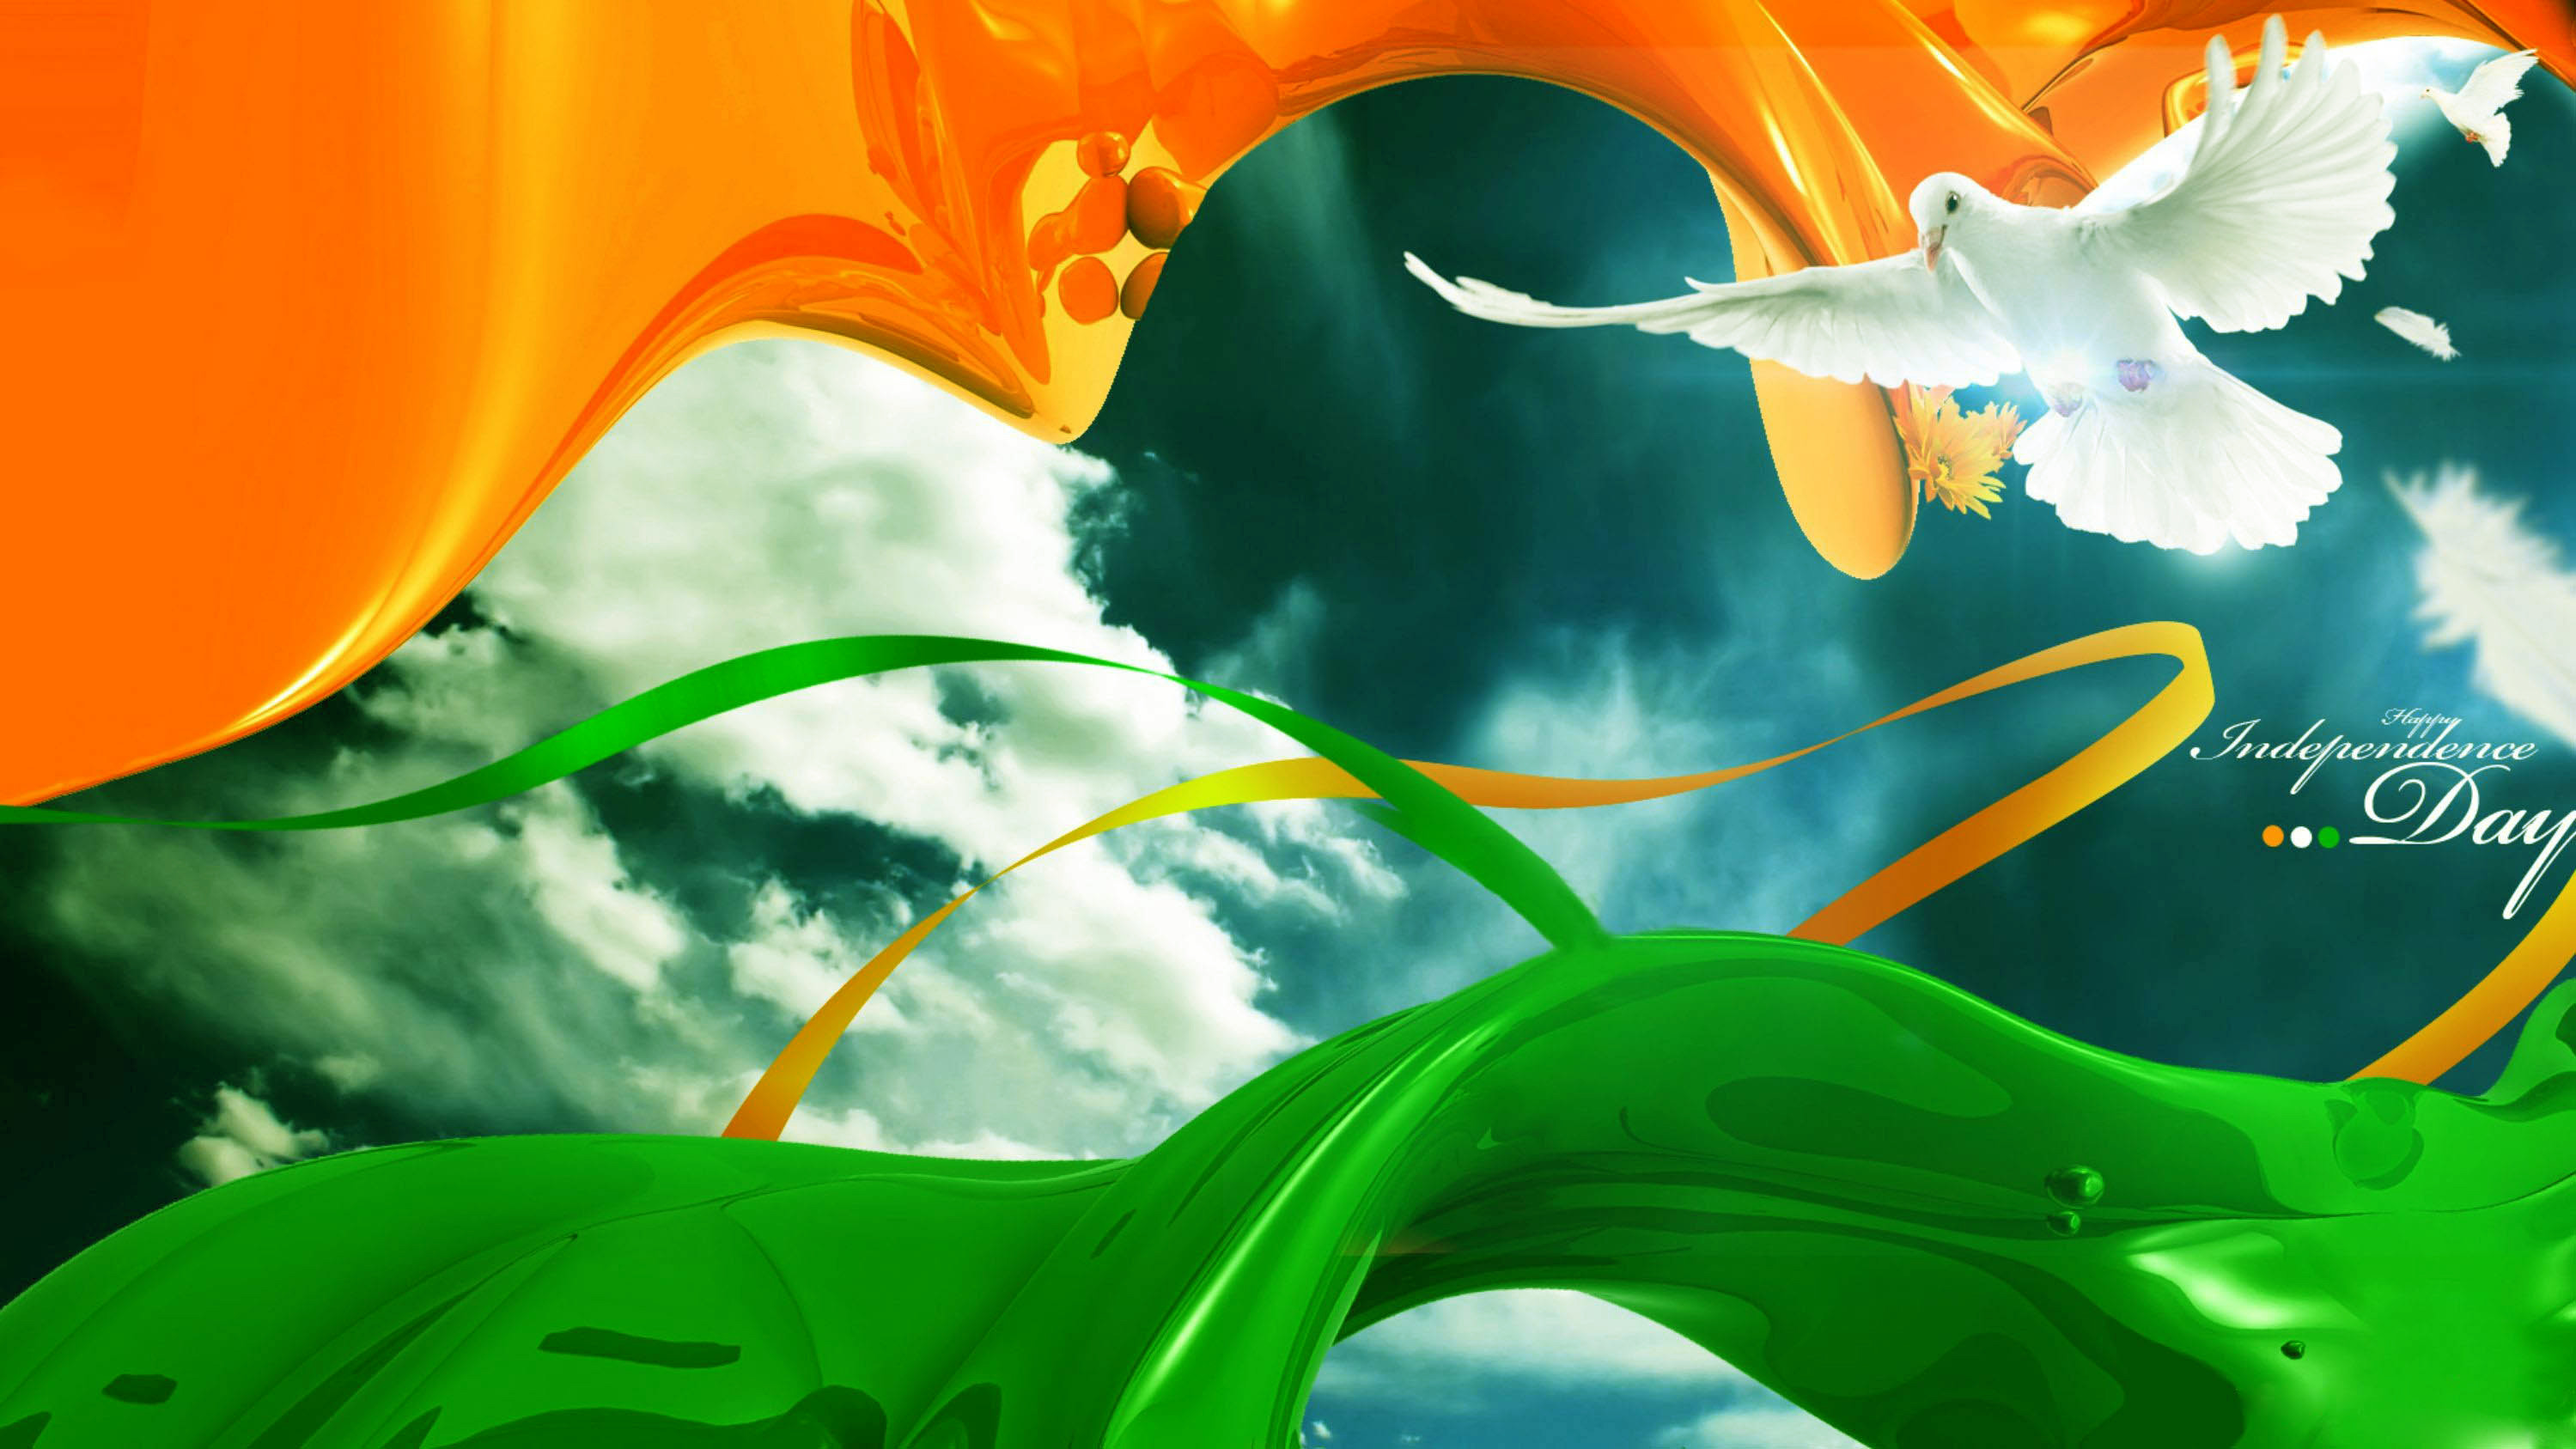 Indian independence day hd pic wallpaper 2018 79 images 2999x1687 happy indian independence day 2014 wishes greetings hd backgrounddesktop wallpapersphotos m4hsunfo